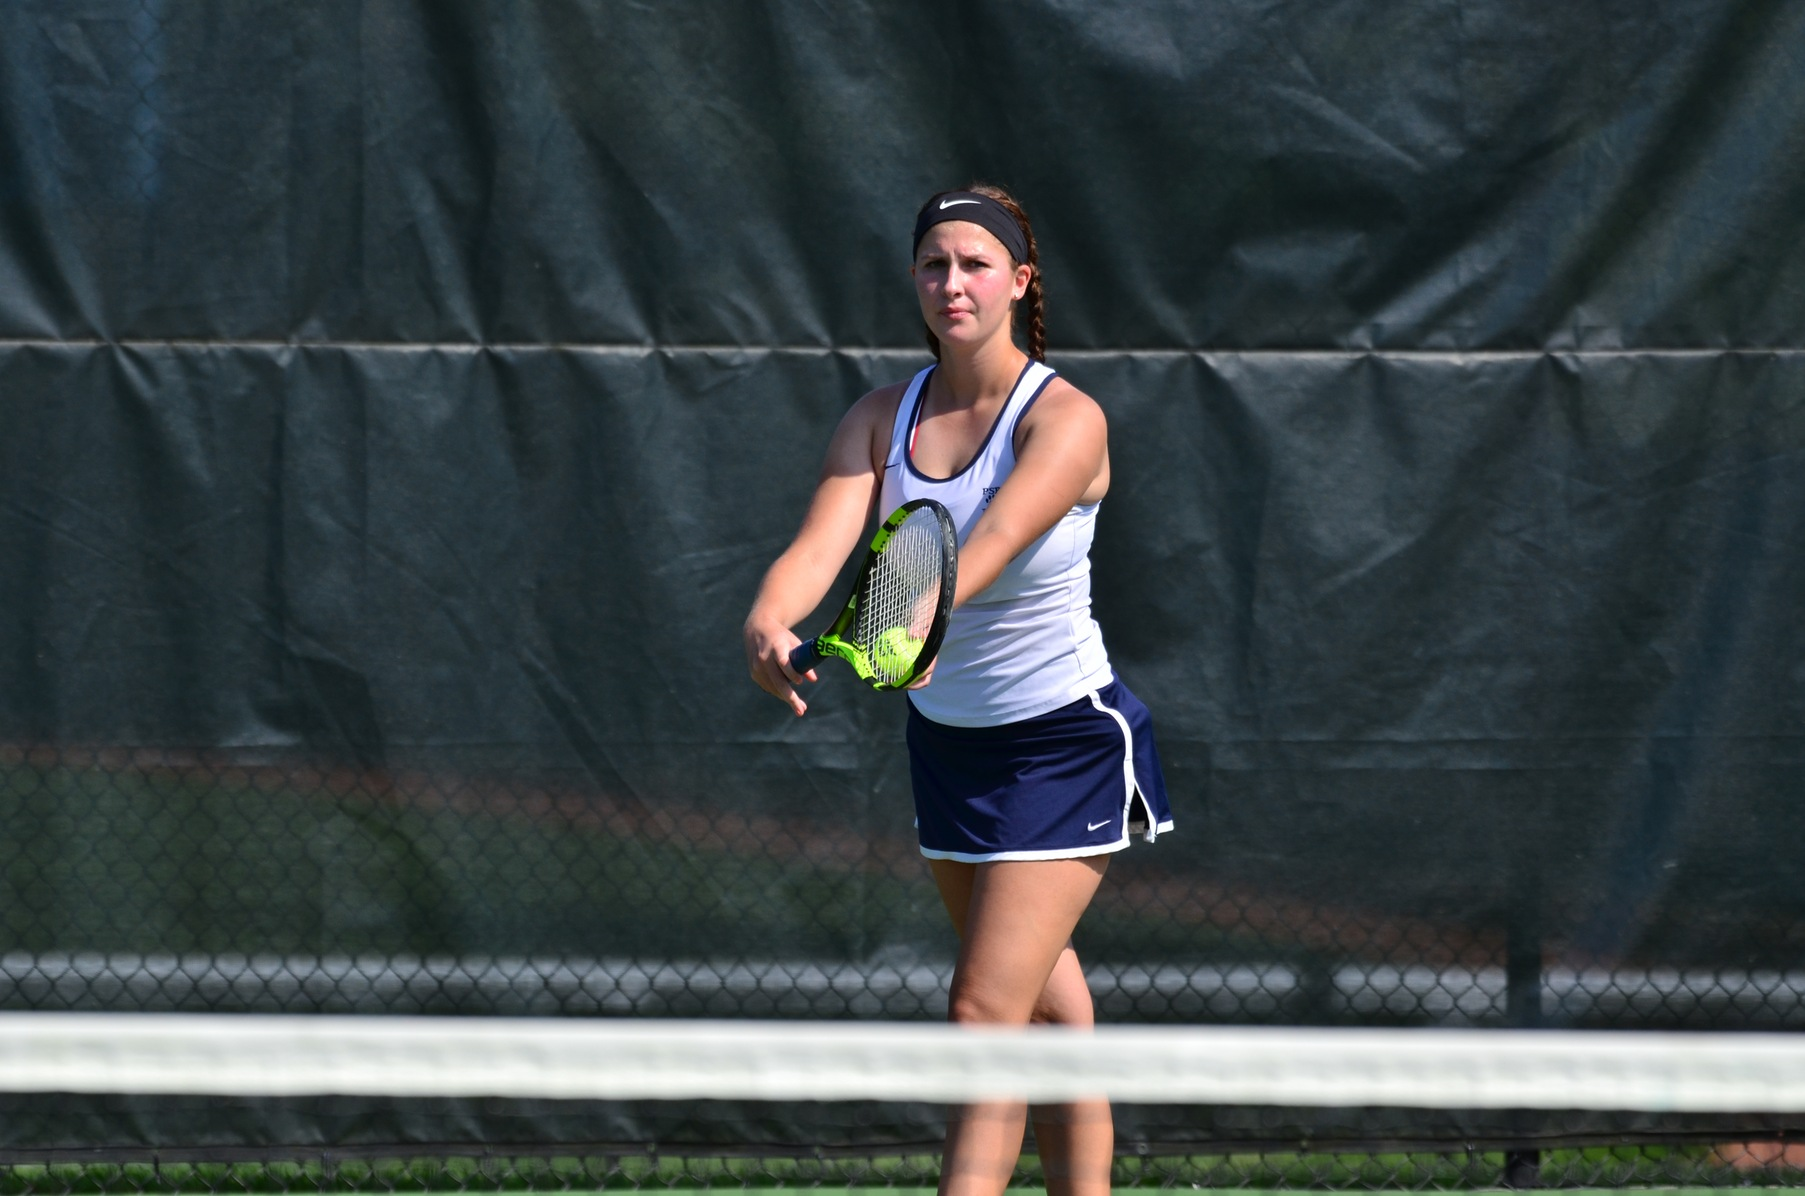 D'Youville Nips Women's Tennis in Home Opener